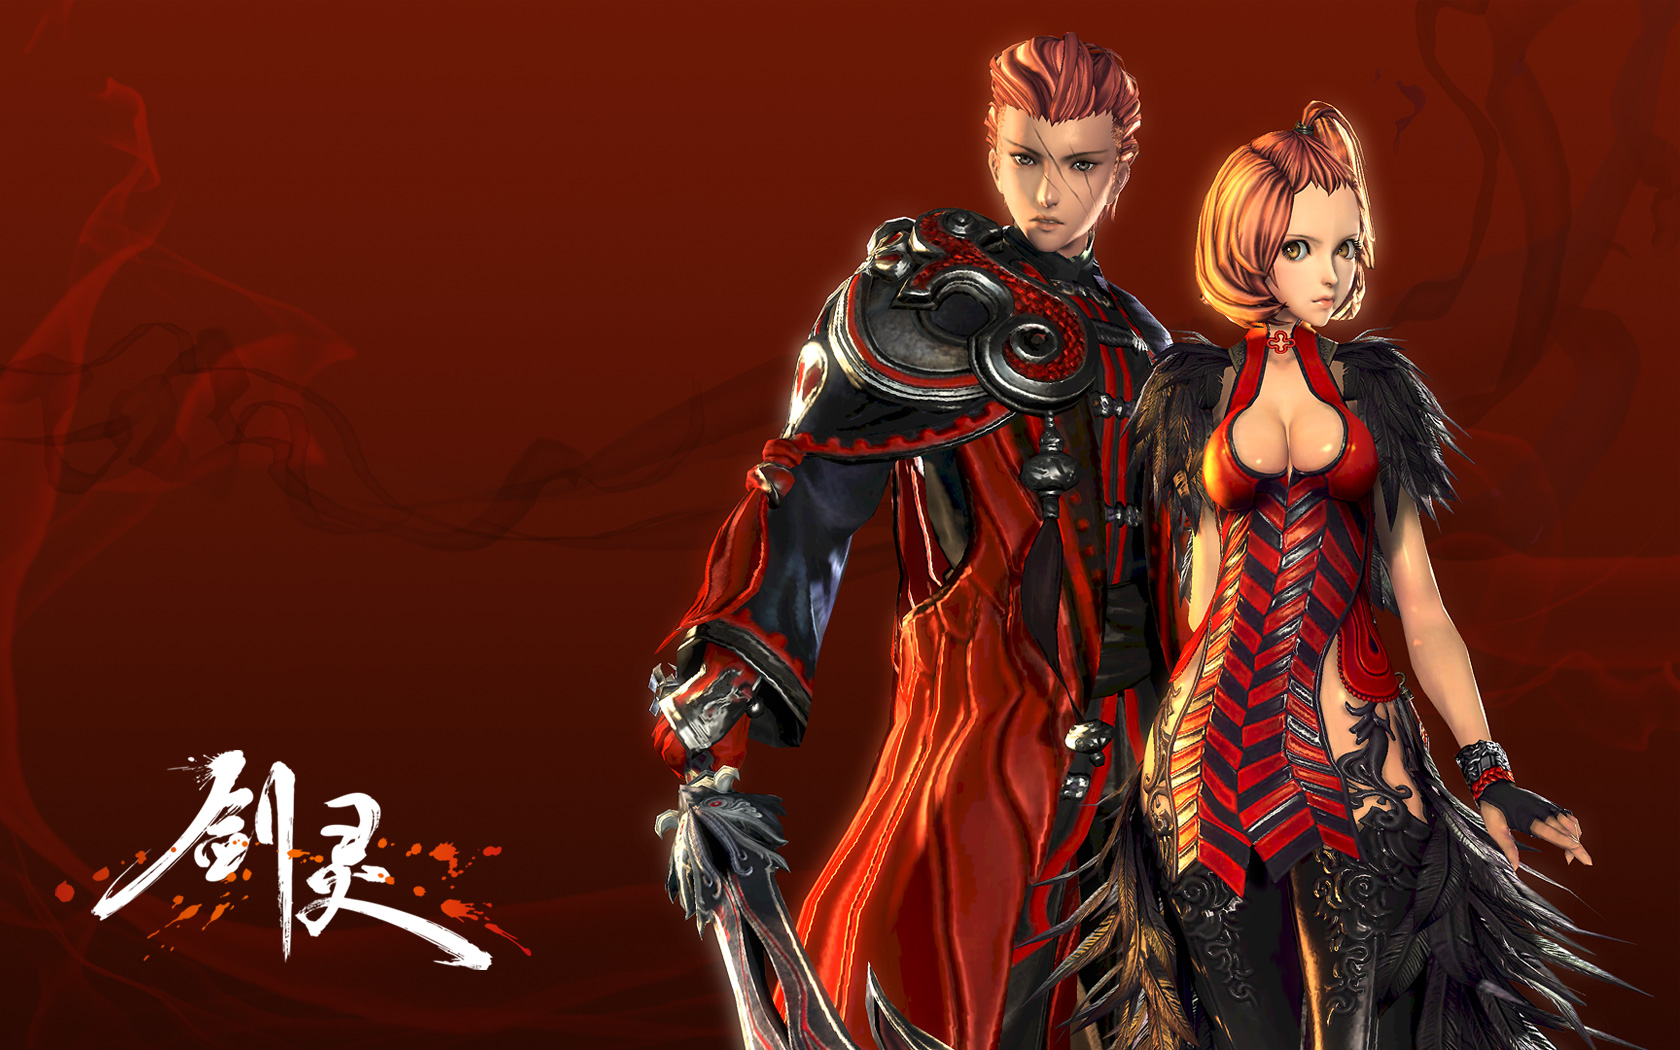 Blade And Soul Wallpaper: Anime Art